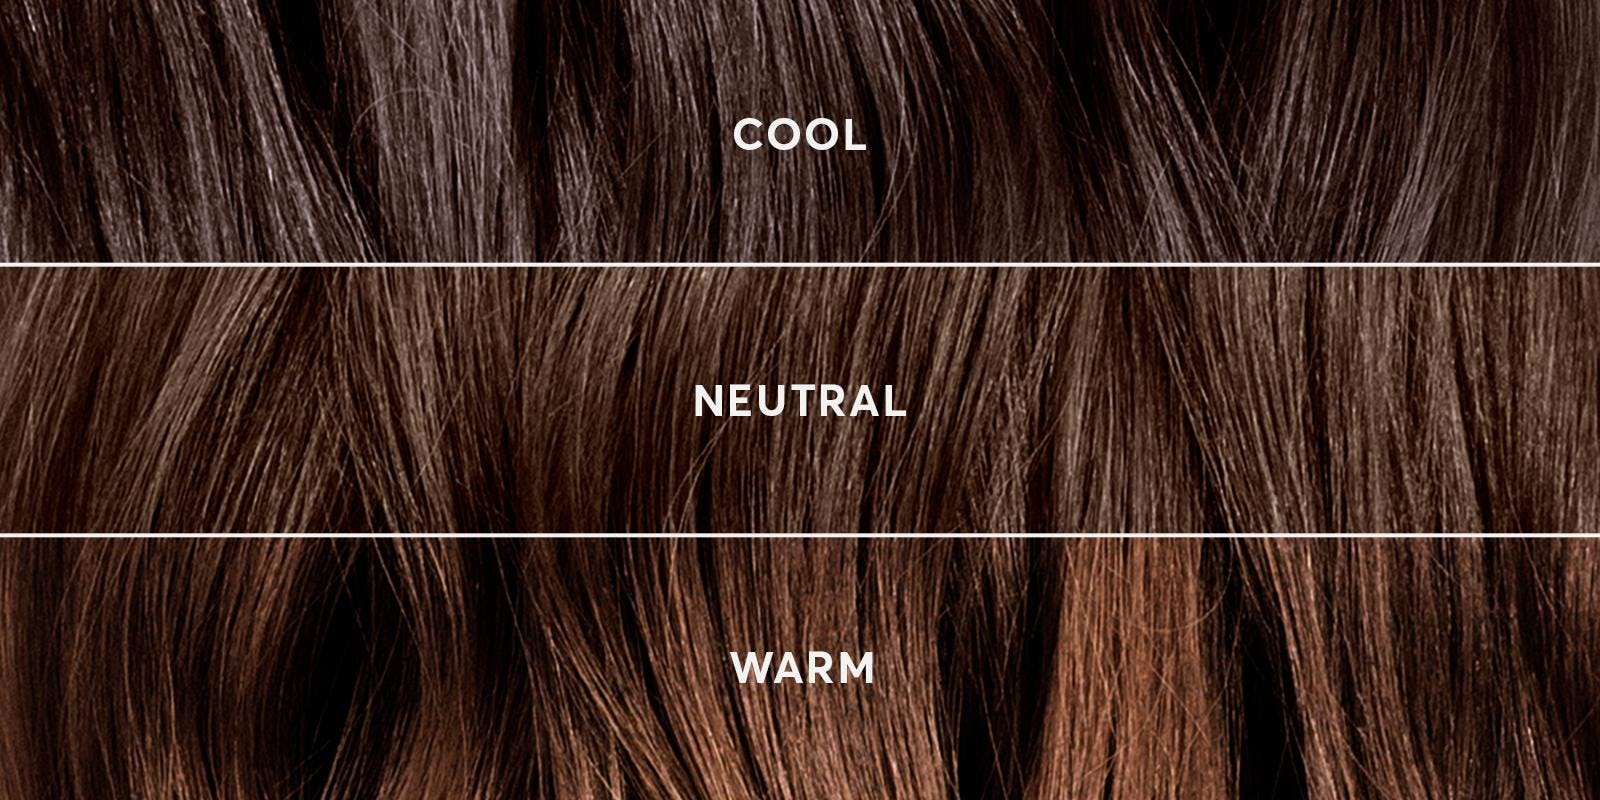 Is My Hair Color Warm or Cool?